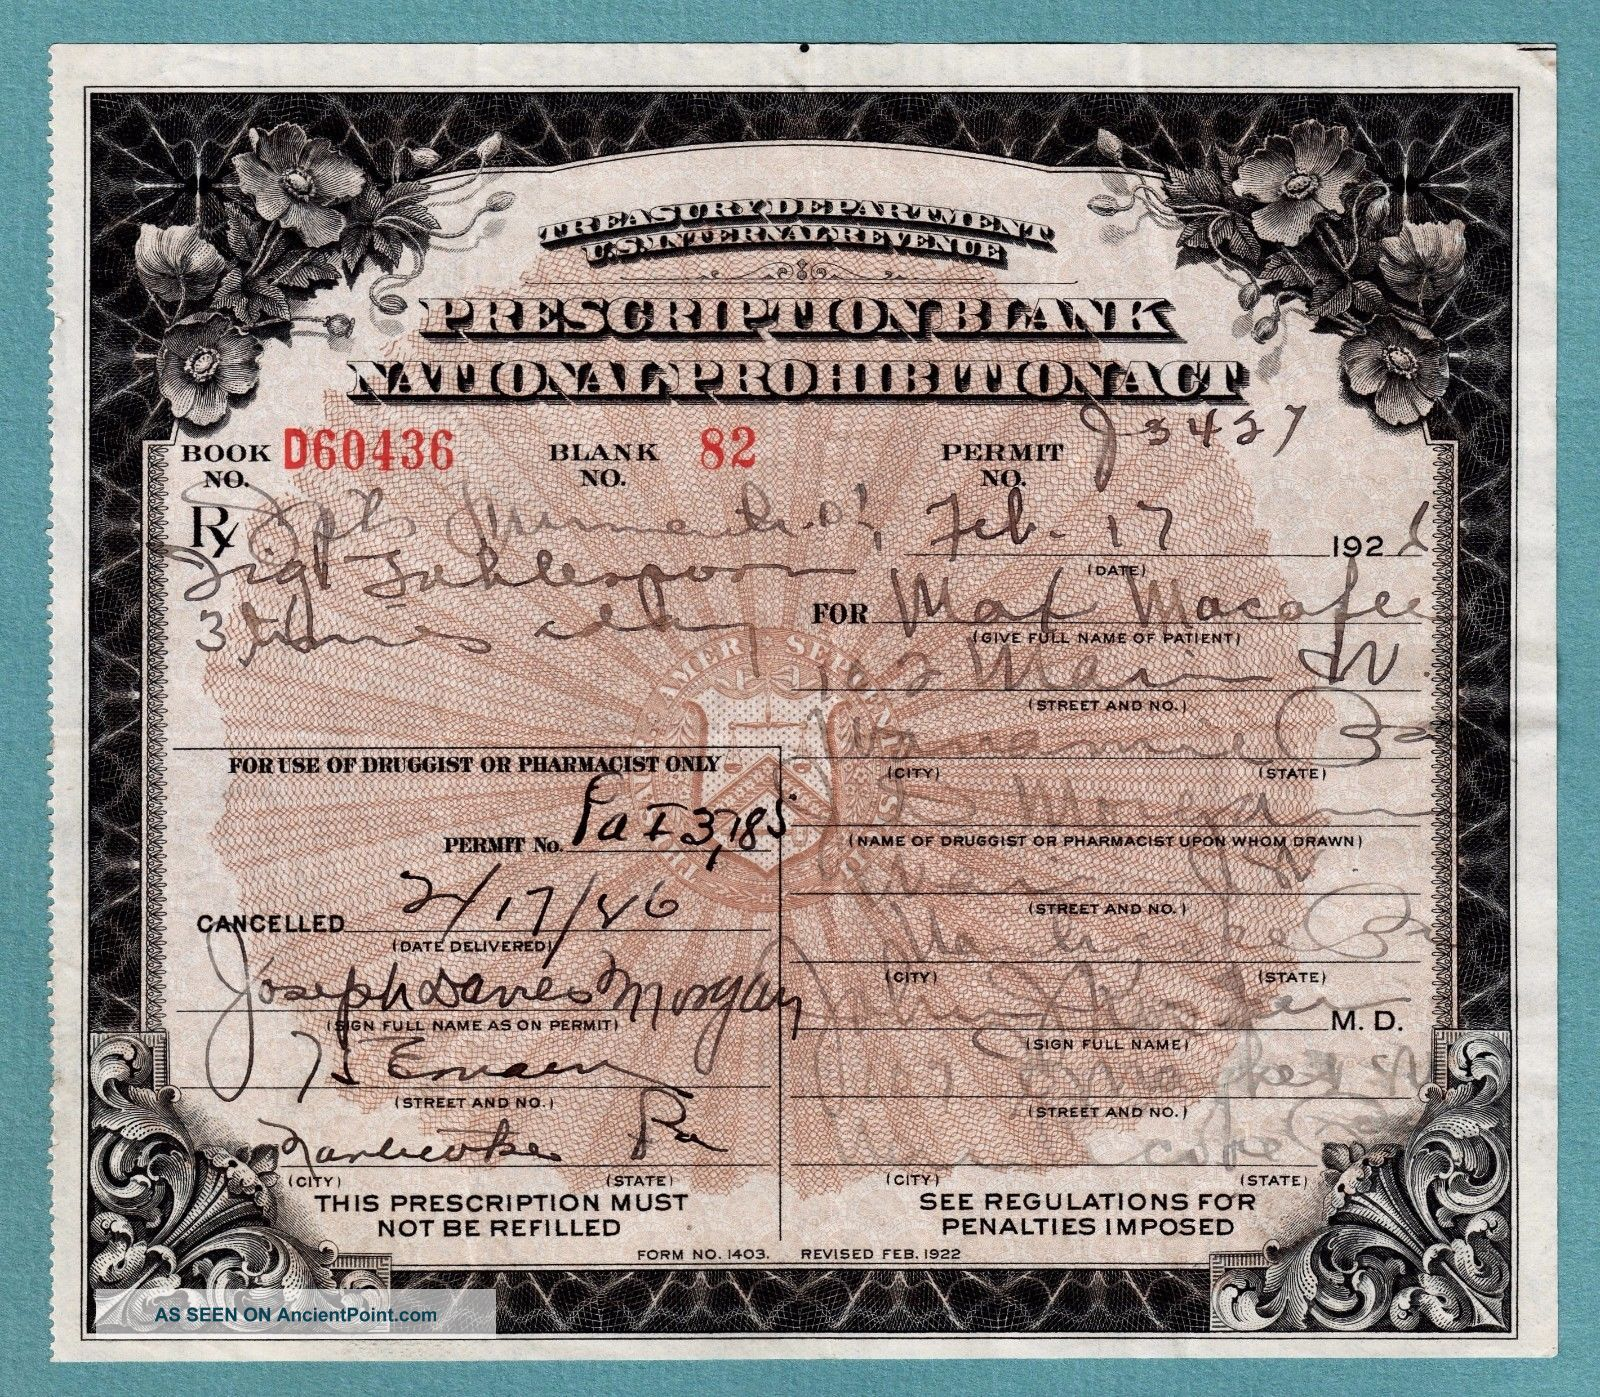 Prohibition Prescription Medical Whiskey Antique Drug Store Pharmacy Doctor Bar Other Medical Antiques photo